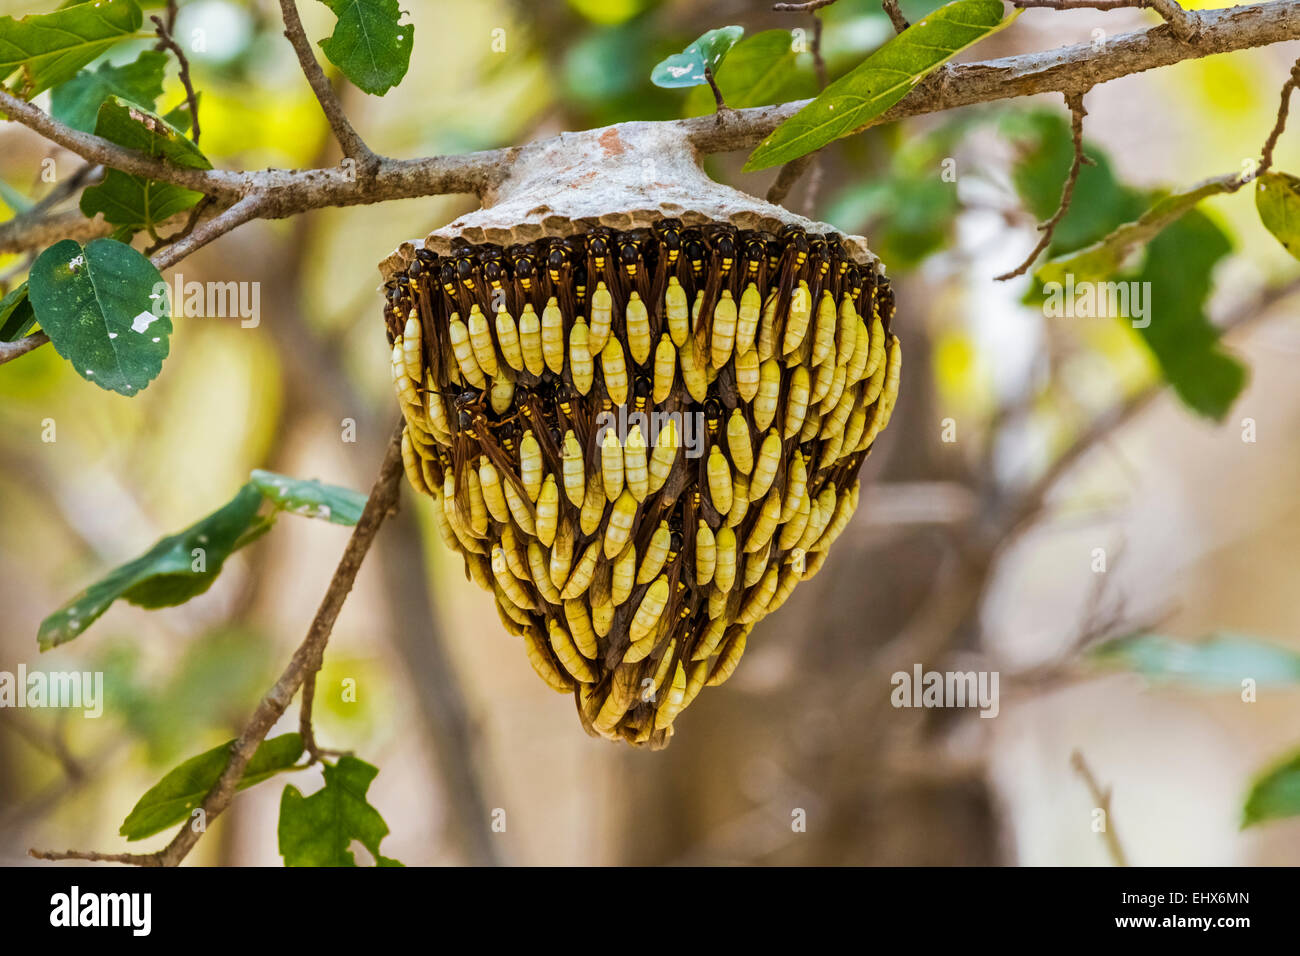 wasp nest known locally as dog s teeth hanging from tree in